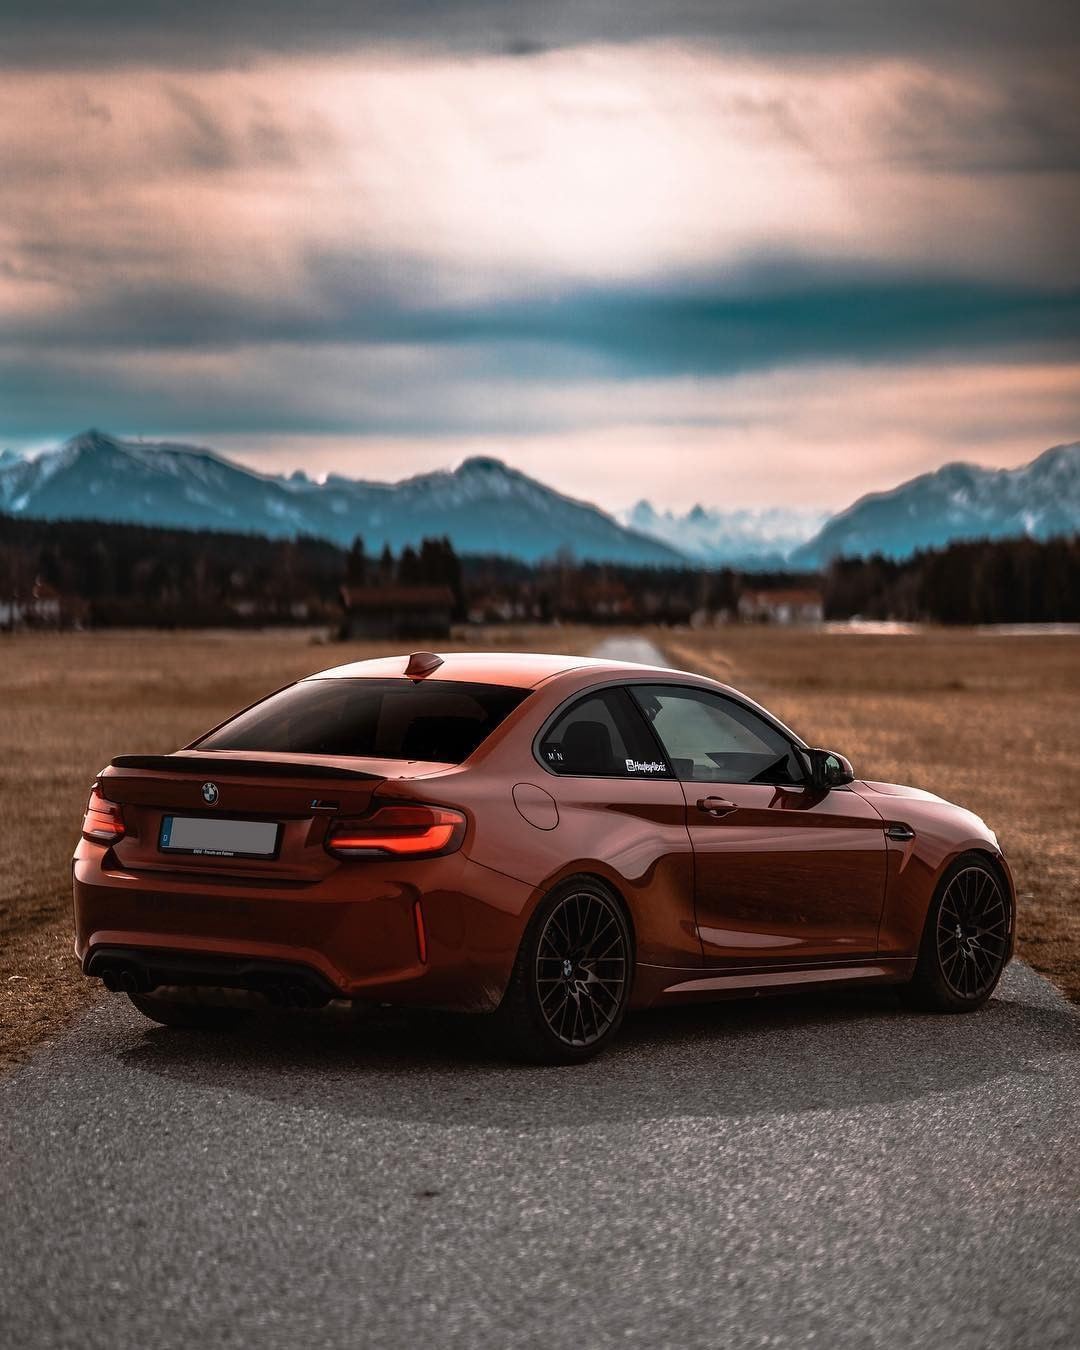 Bmw F87 M2 Competition In Sunset Orange Metallic Mpn Photography